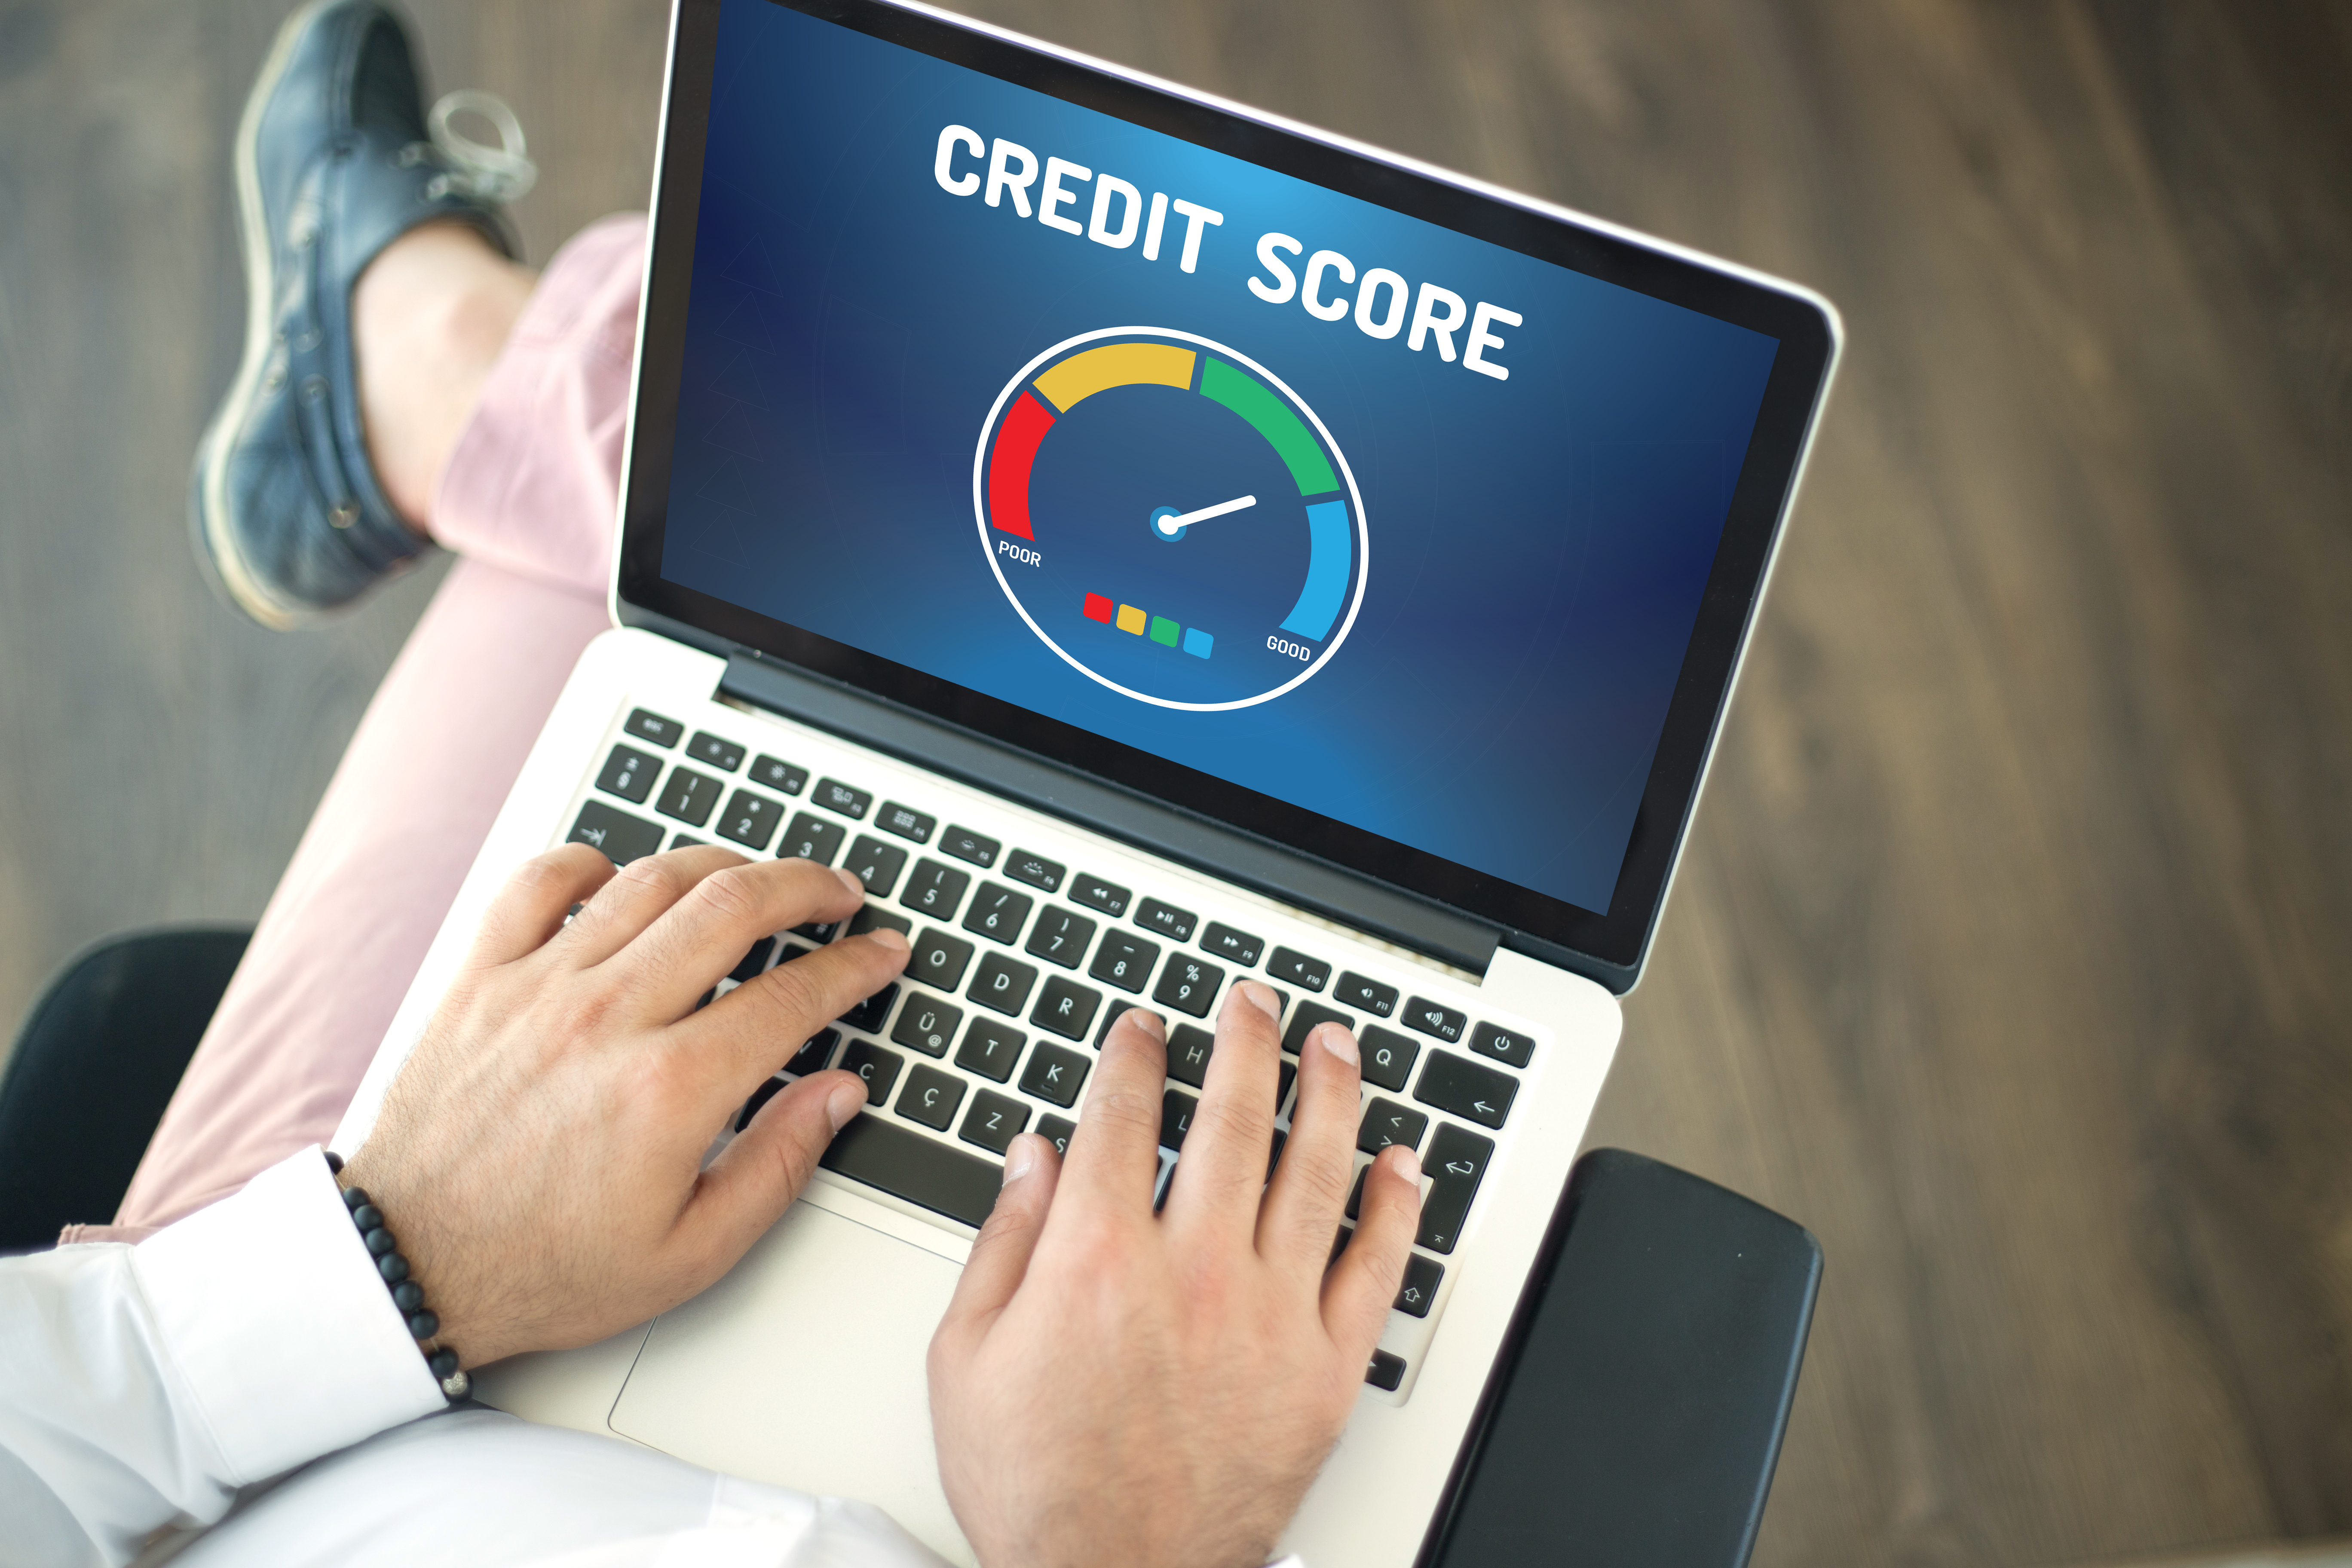 Computer laptop that says Credit Score on the screen